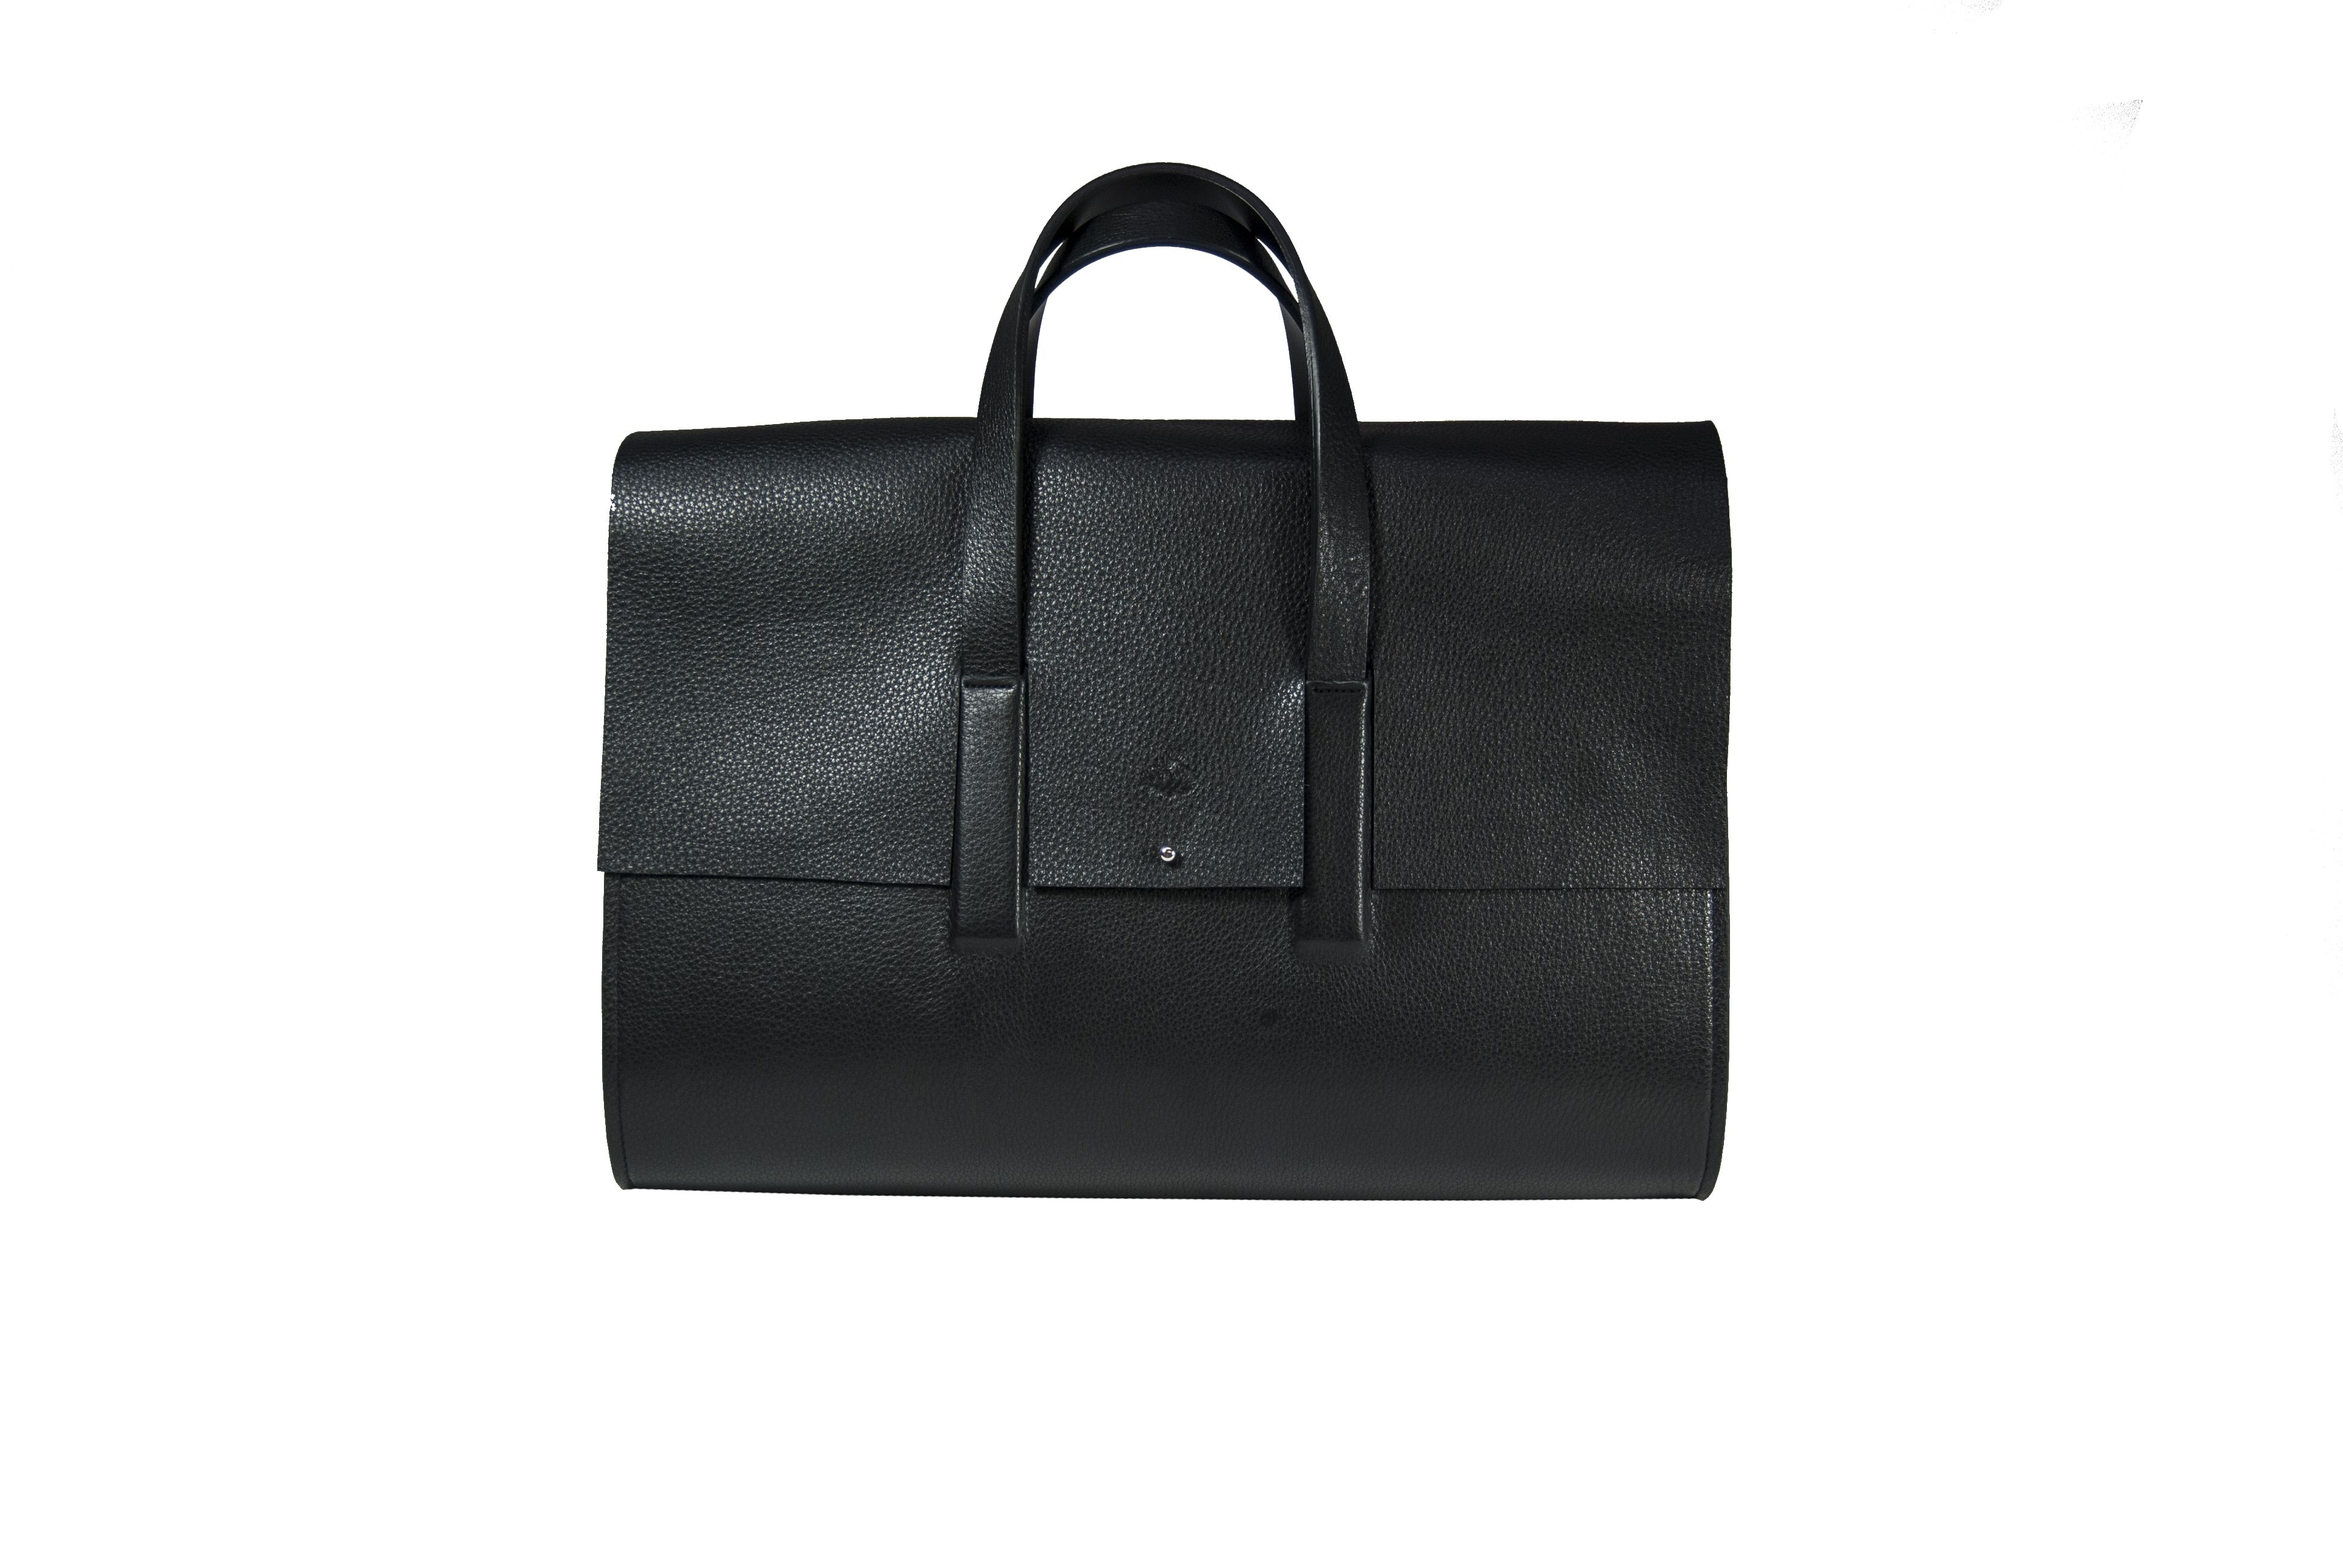 Atelier Martin Dhust Is A Montréal Based Leather Bags Accessories And Clothing Company Making Fine Unique Minimalistic Products